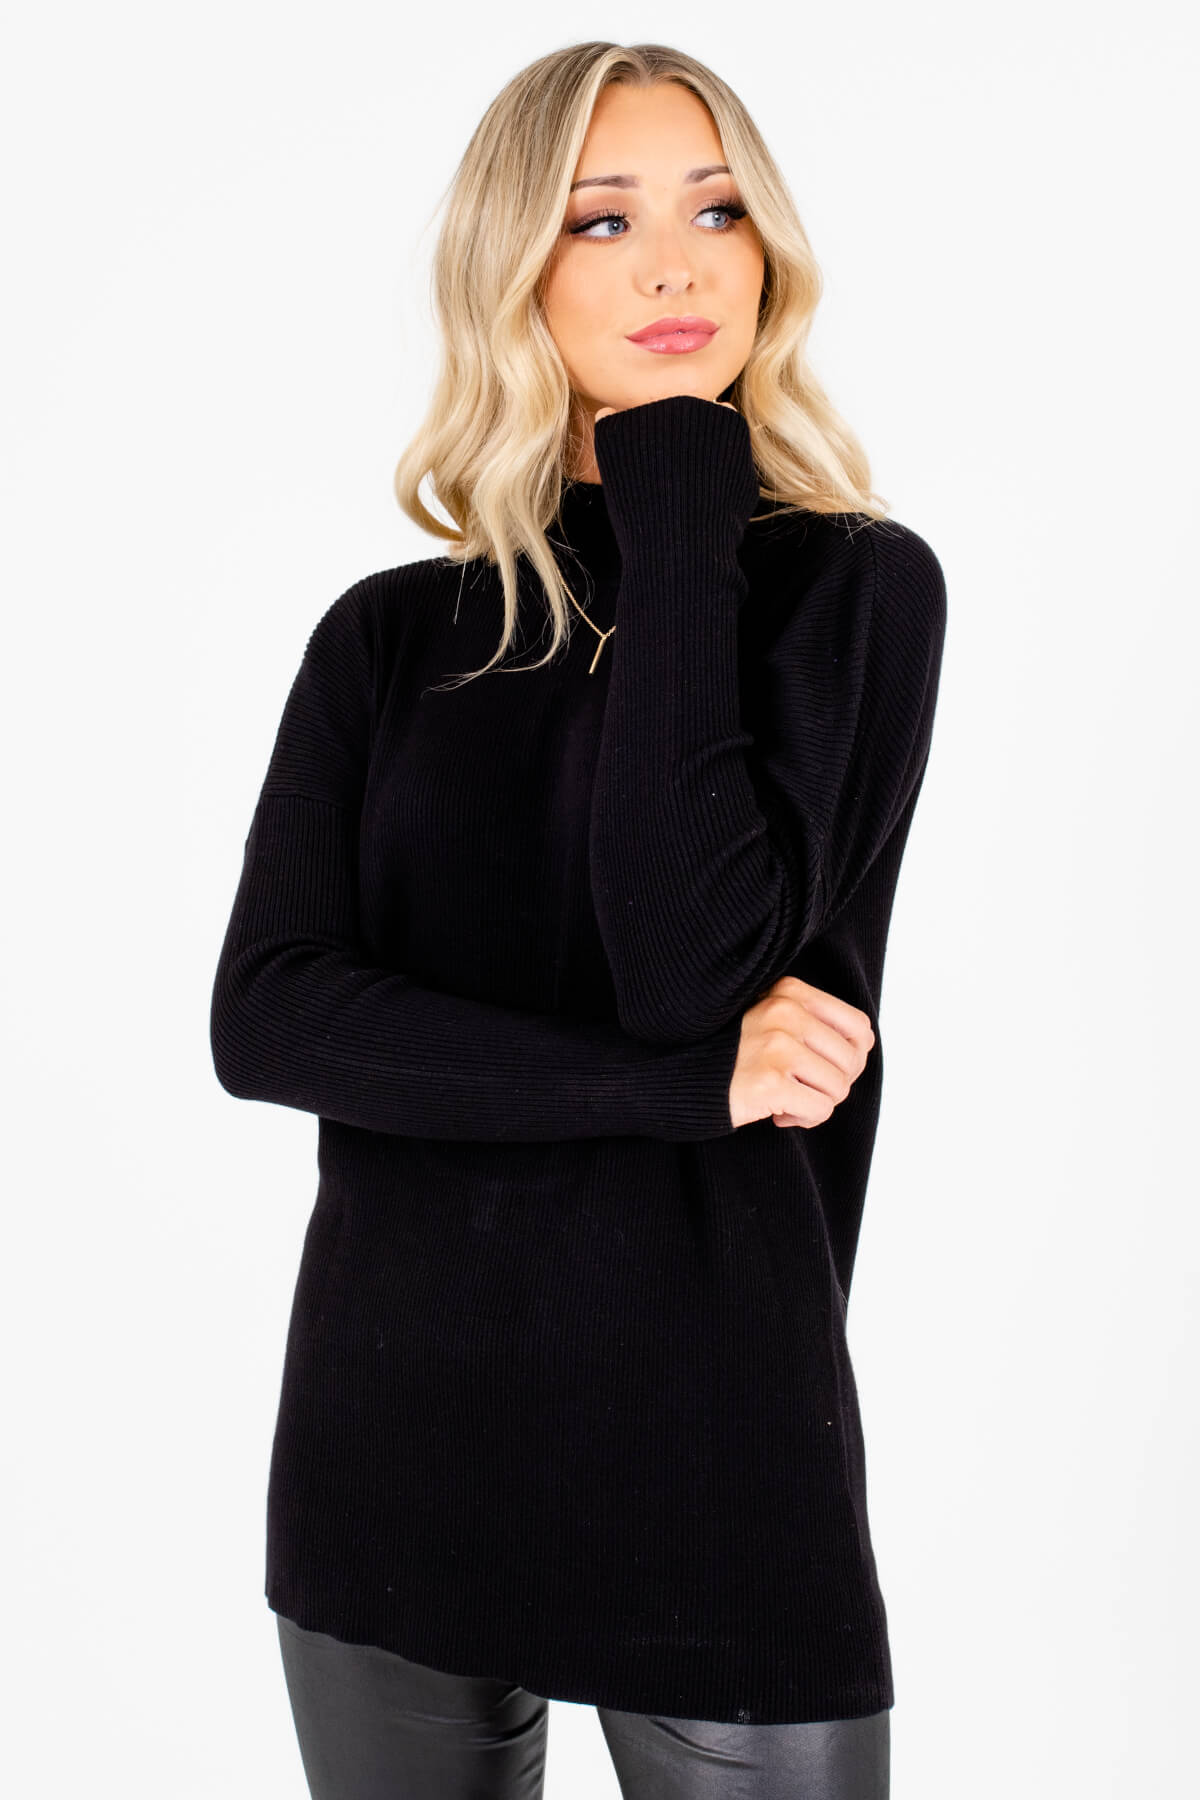 Women's Black Warm and Cozy Boutique Clothing